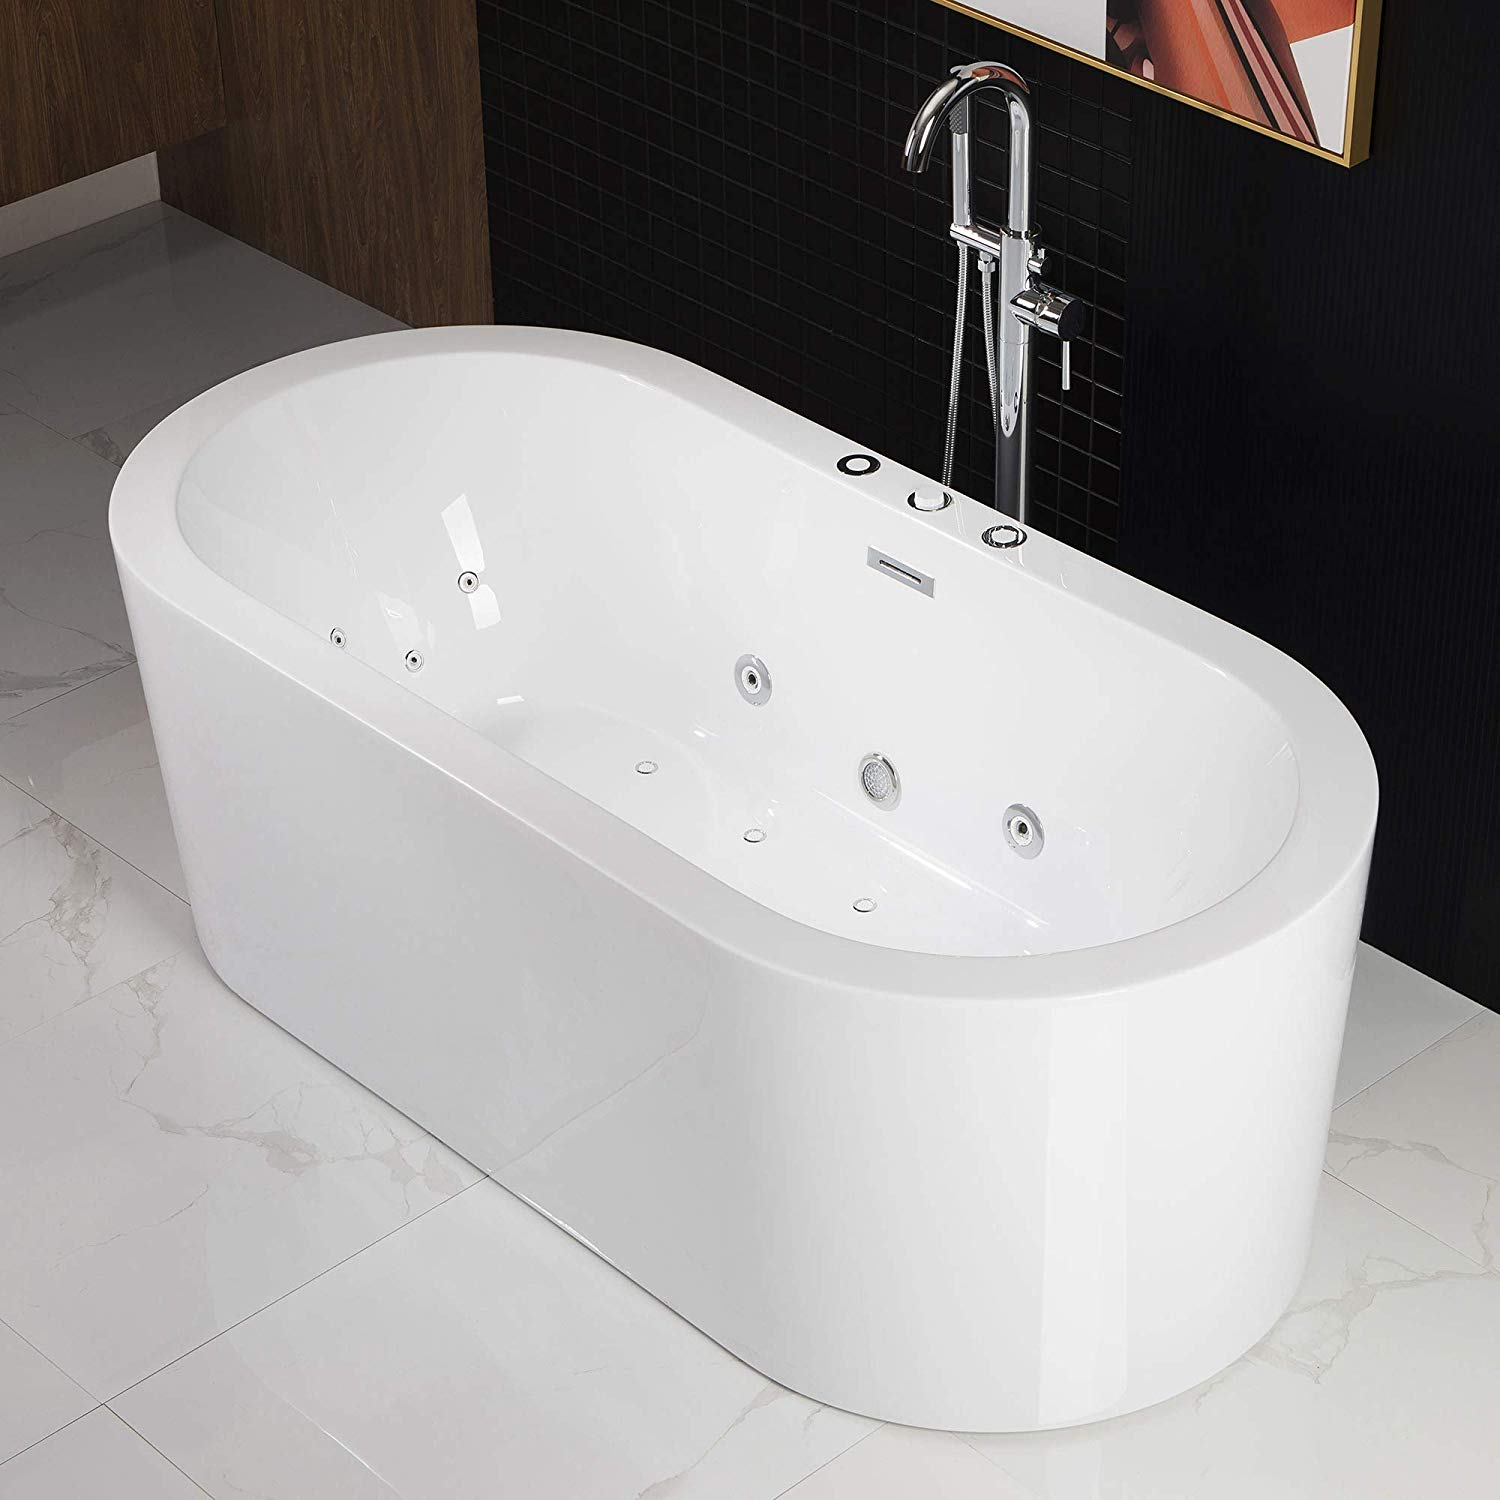 modern-jacuzzi-bathtub-freestanding-design-with-therapeutic-jets-66-inch-length